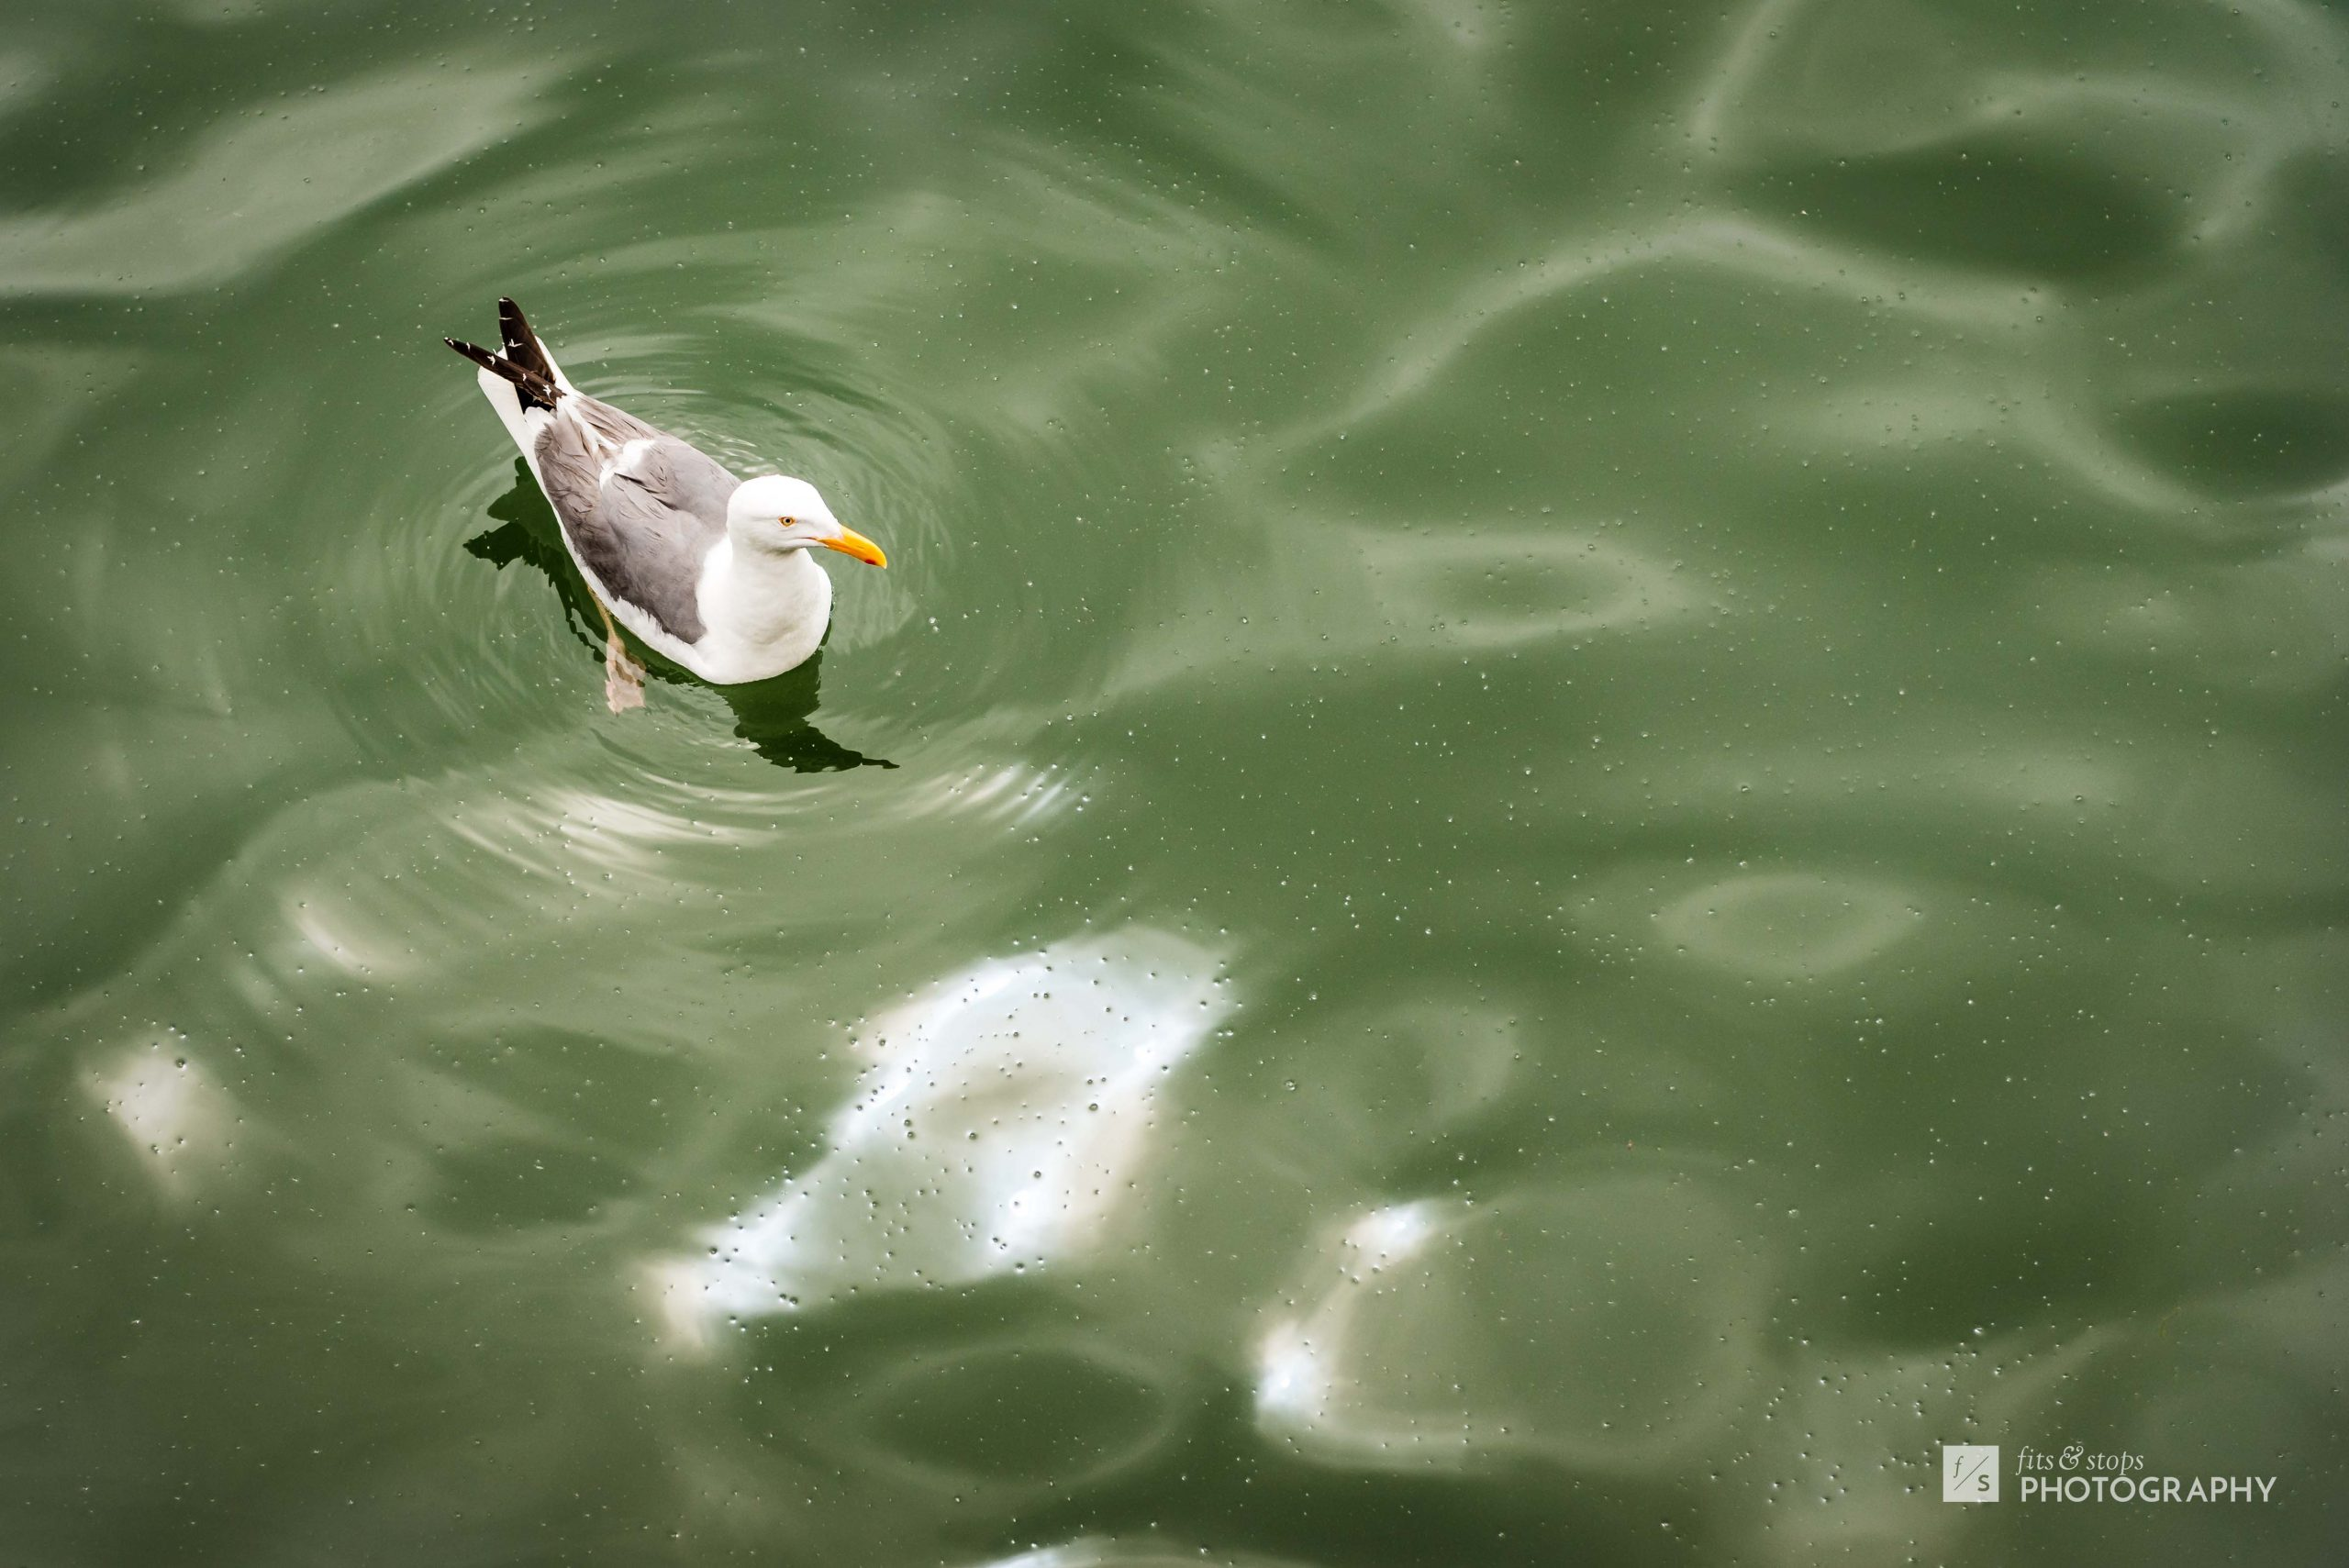 A lone seagull bob on the surface of shallow green waters at a pier in Bodega Bay, California.